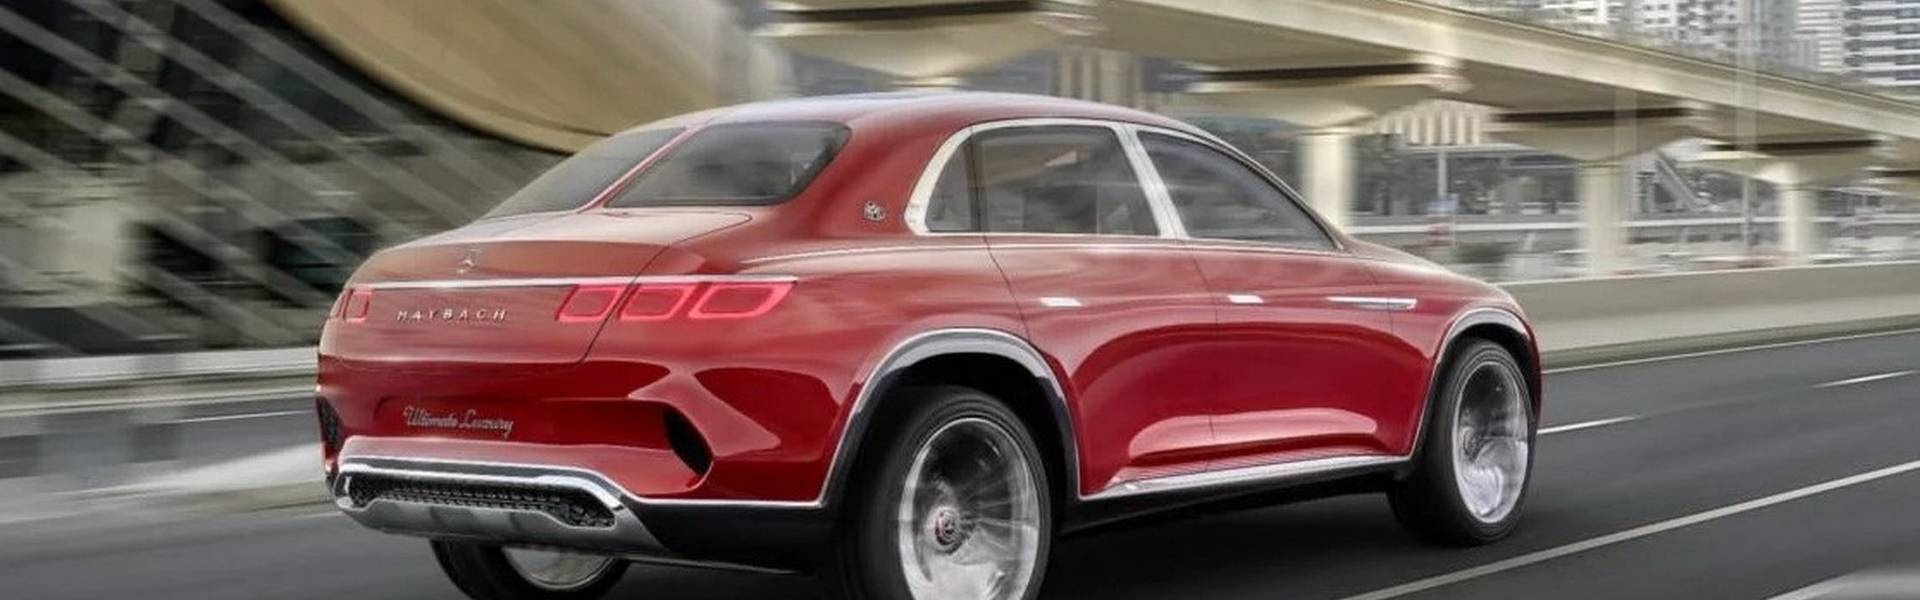 vision-mercedes-maybach-ultimate-luxury-leaked-official-image (6).jpg